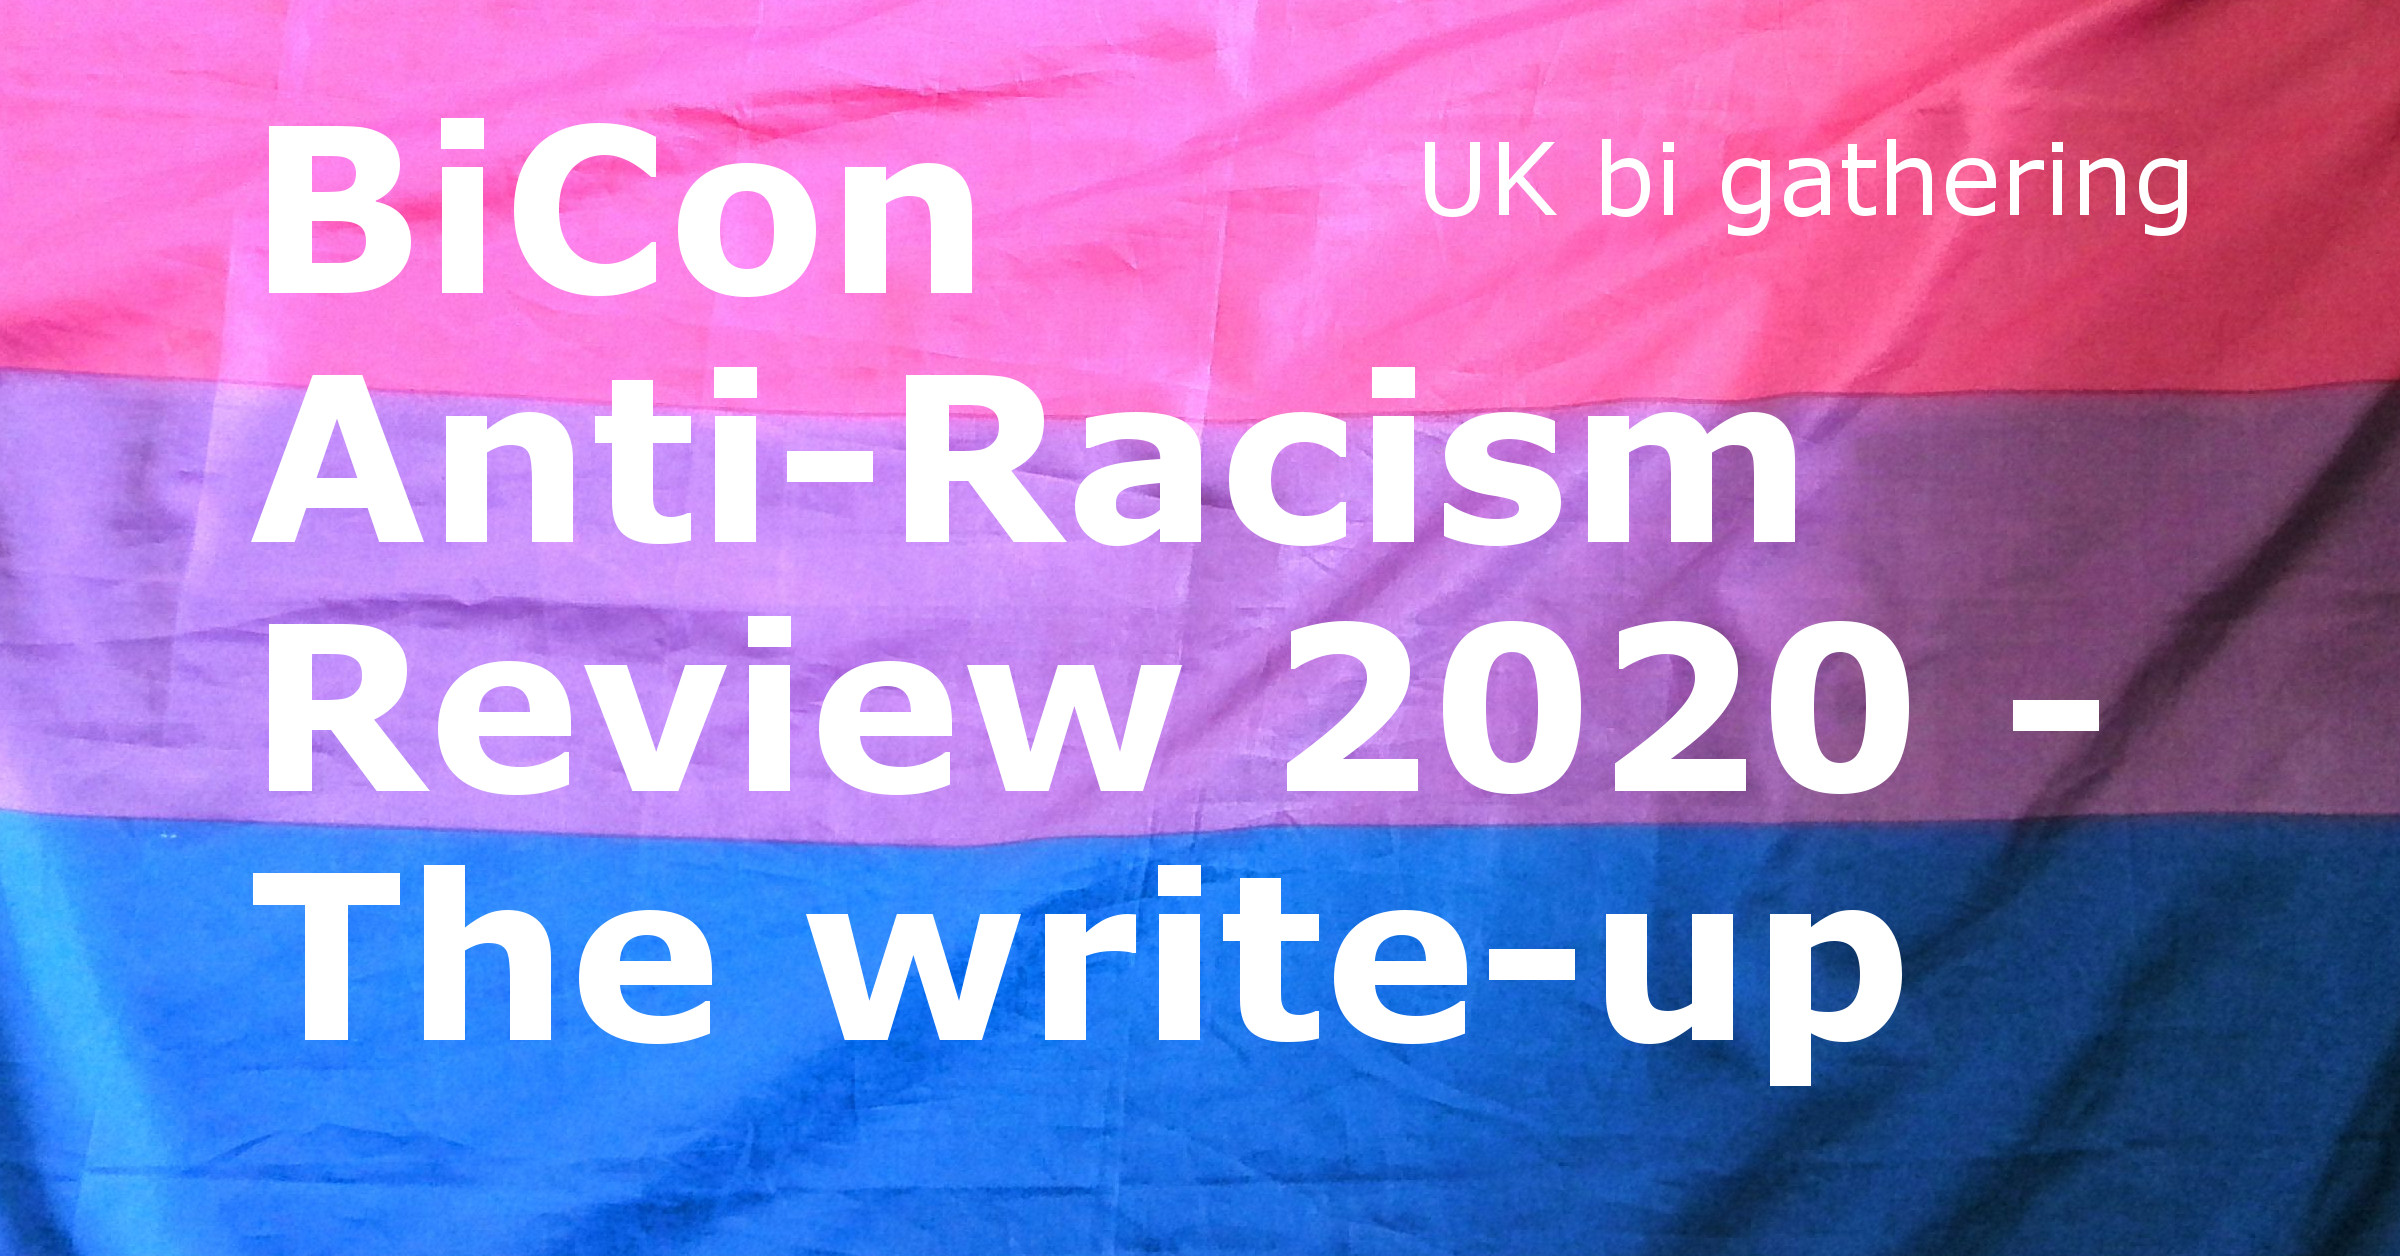 BiCon Anti-Racism Review 2020 - The write-up